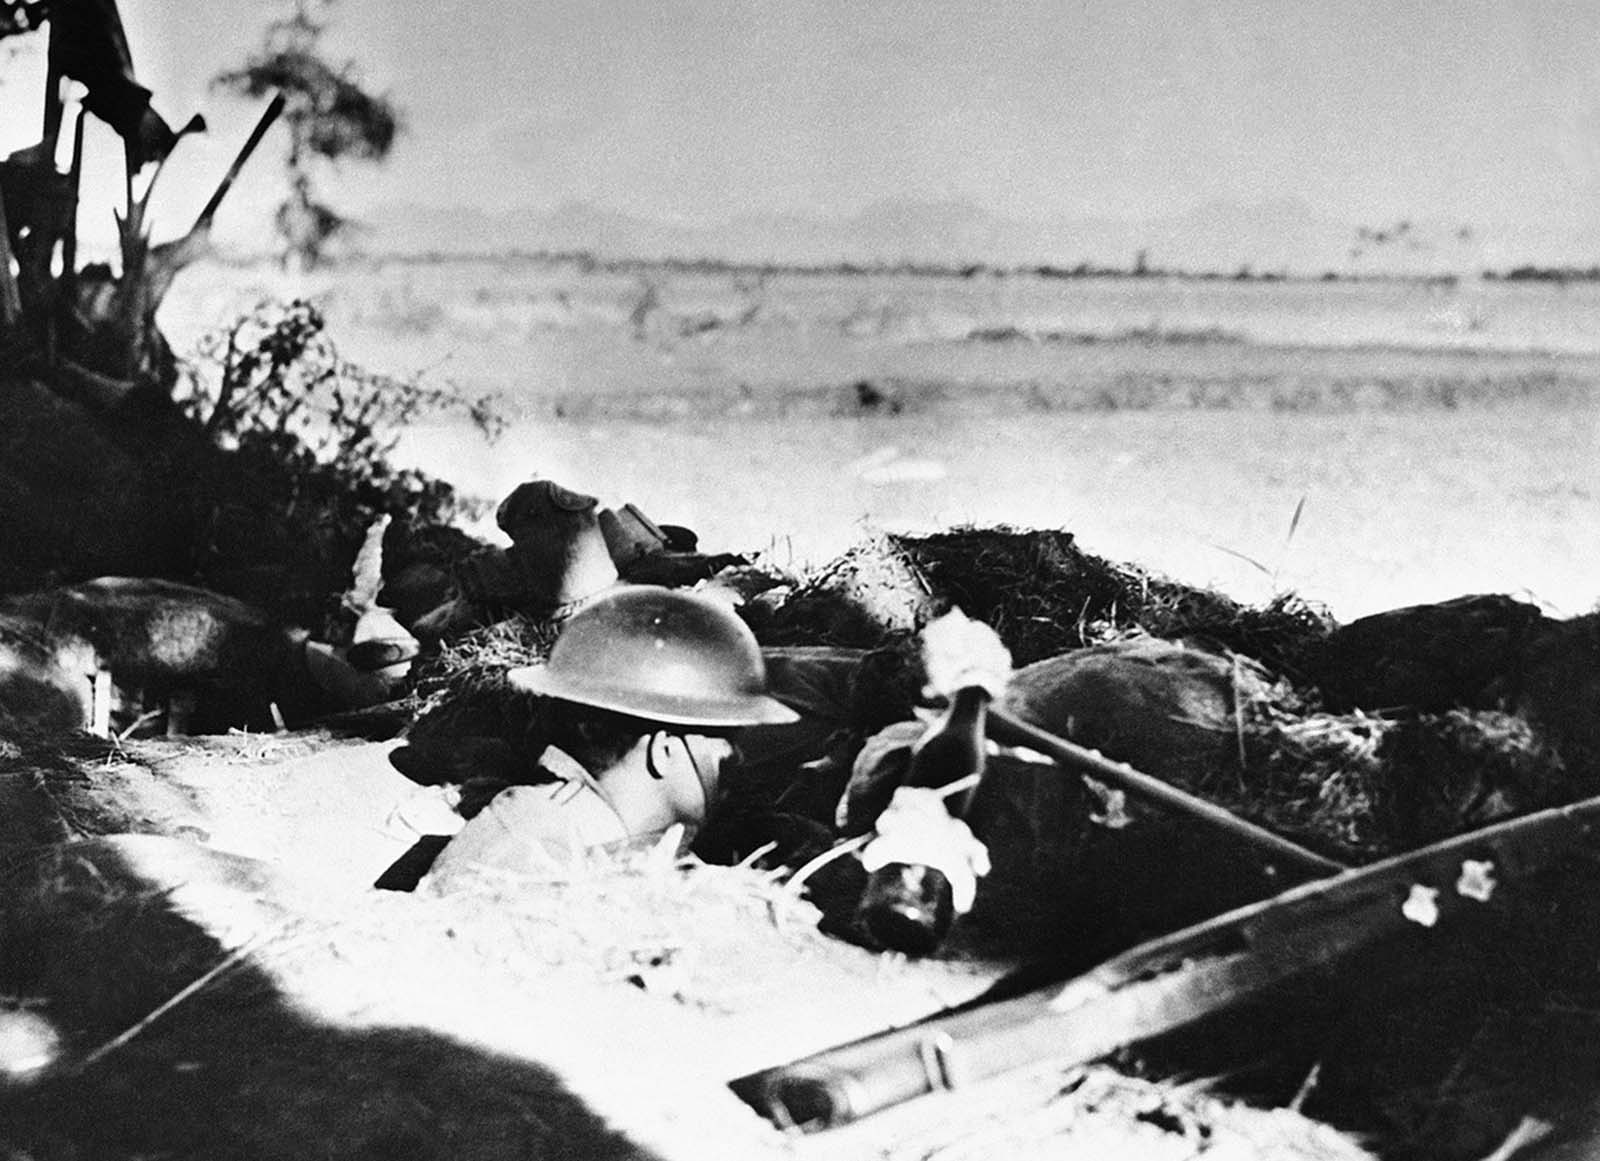 An American soldier stands tense in his foxhole on Bataan peninsula, in the Philippines, waiting to hurl a flaming bottle bomb at an oncoming Japanese tank, in April of 1942.